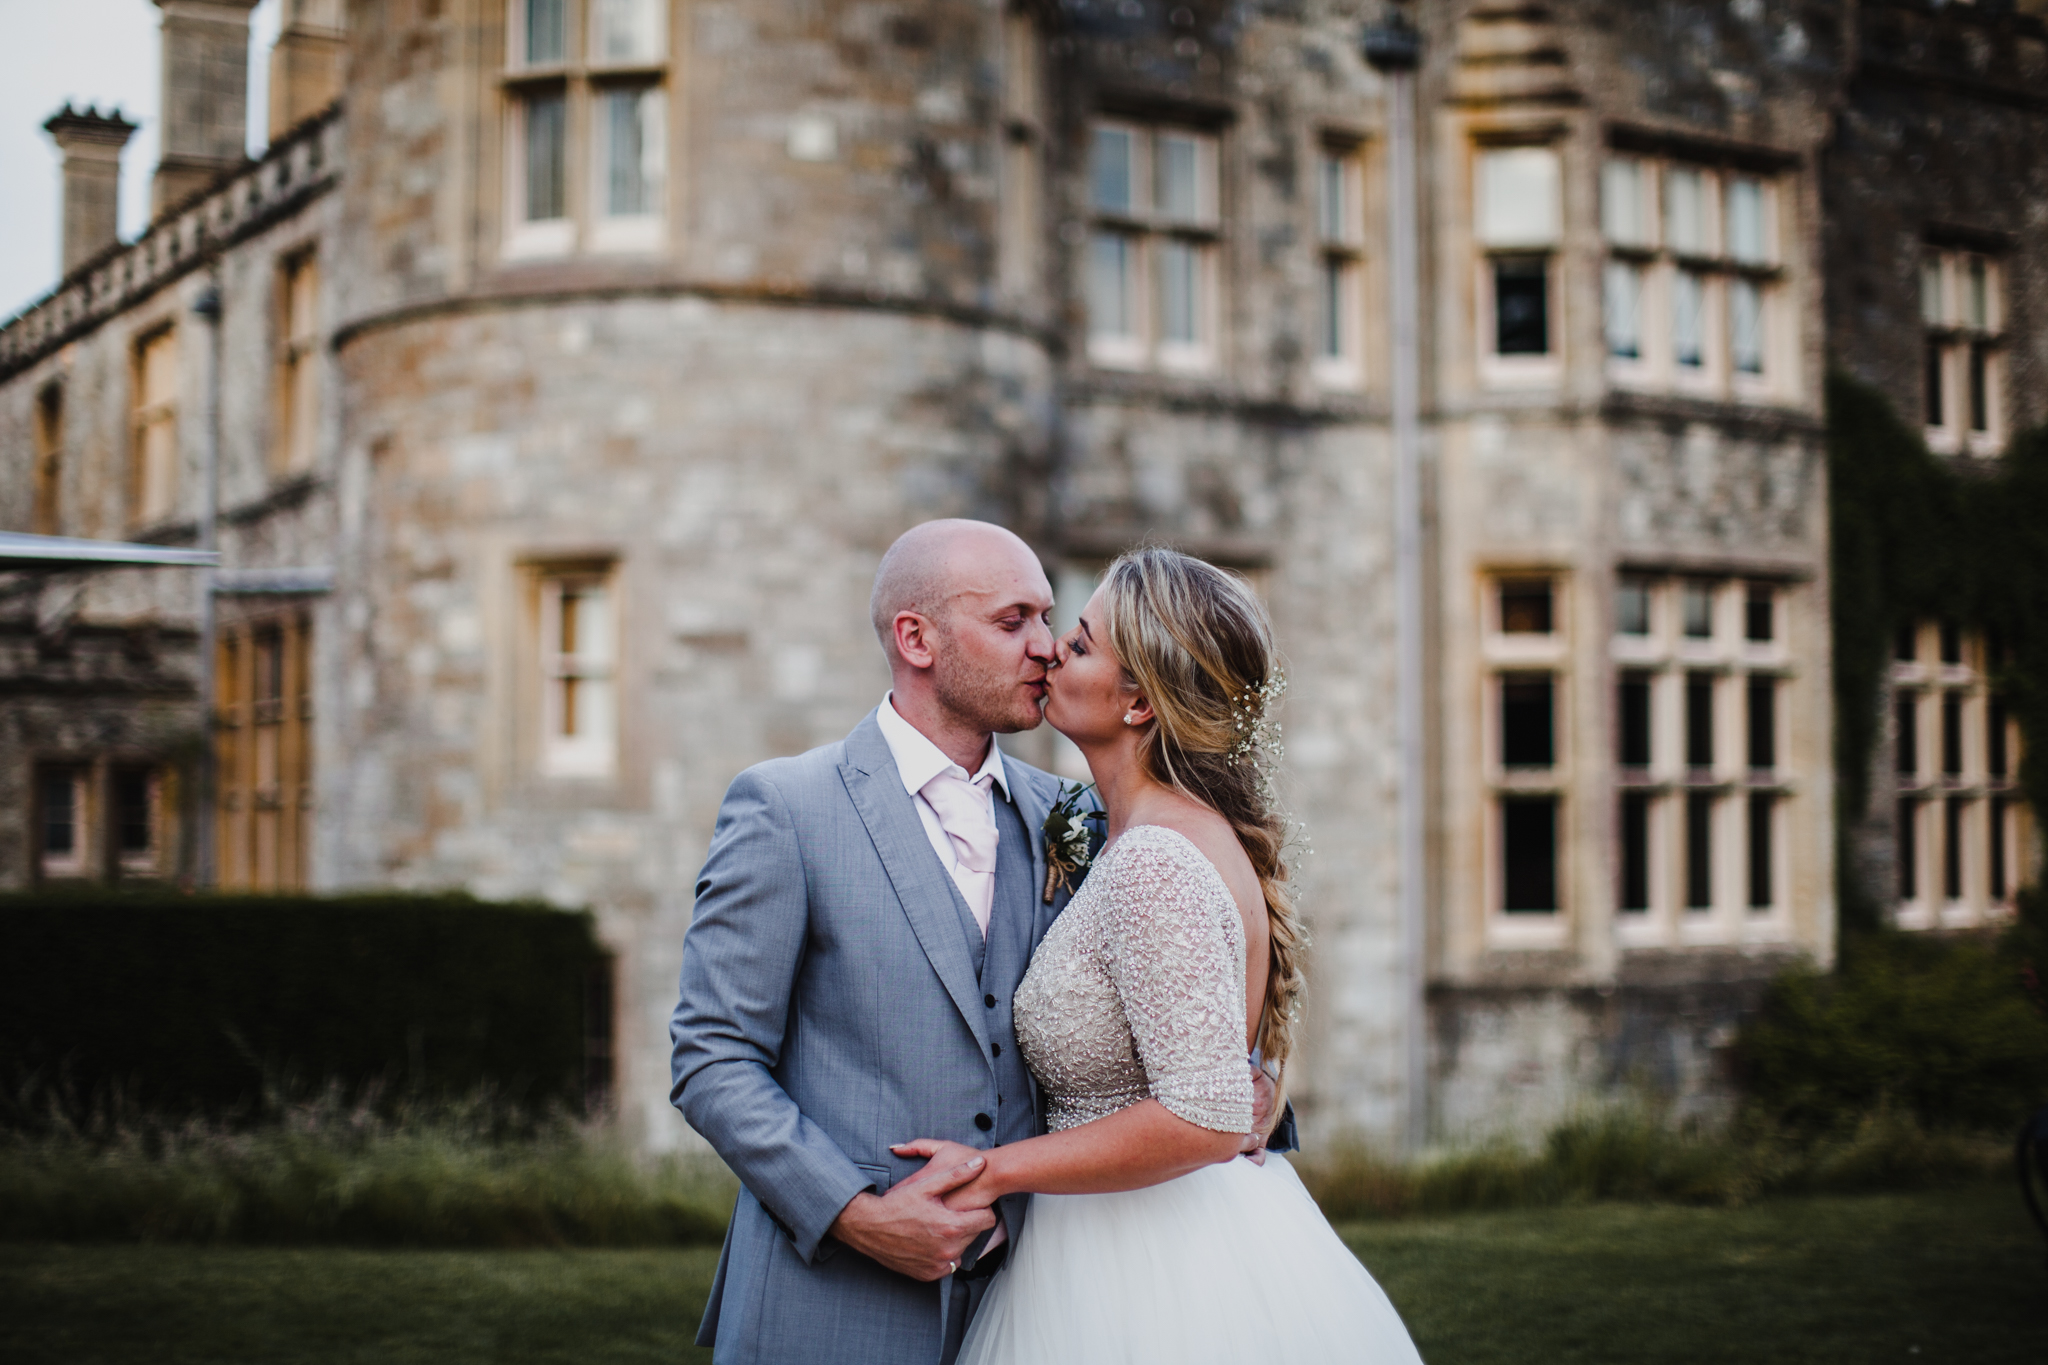 Bride and groom kissing in front of a stone english castle